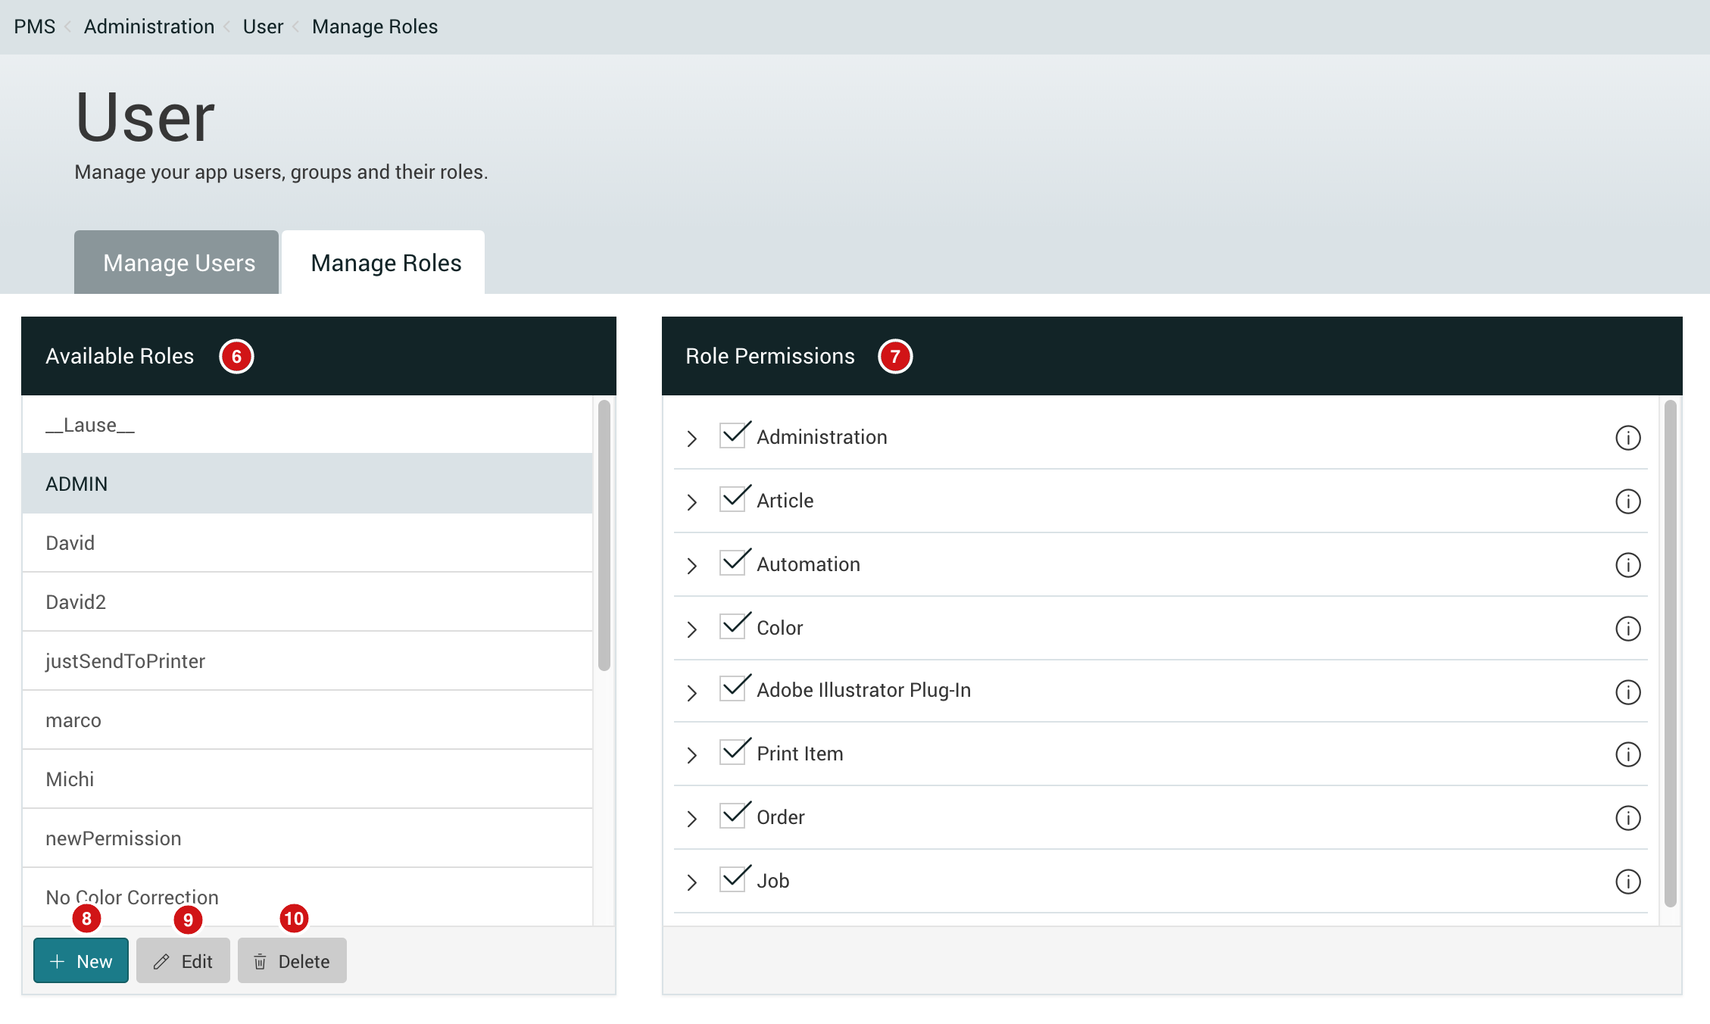 manage roles tab with role permissions